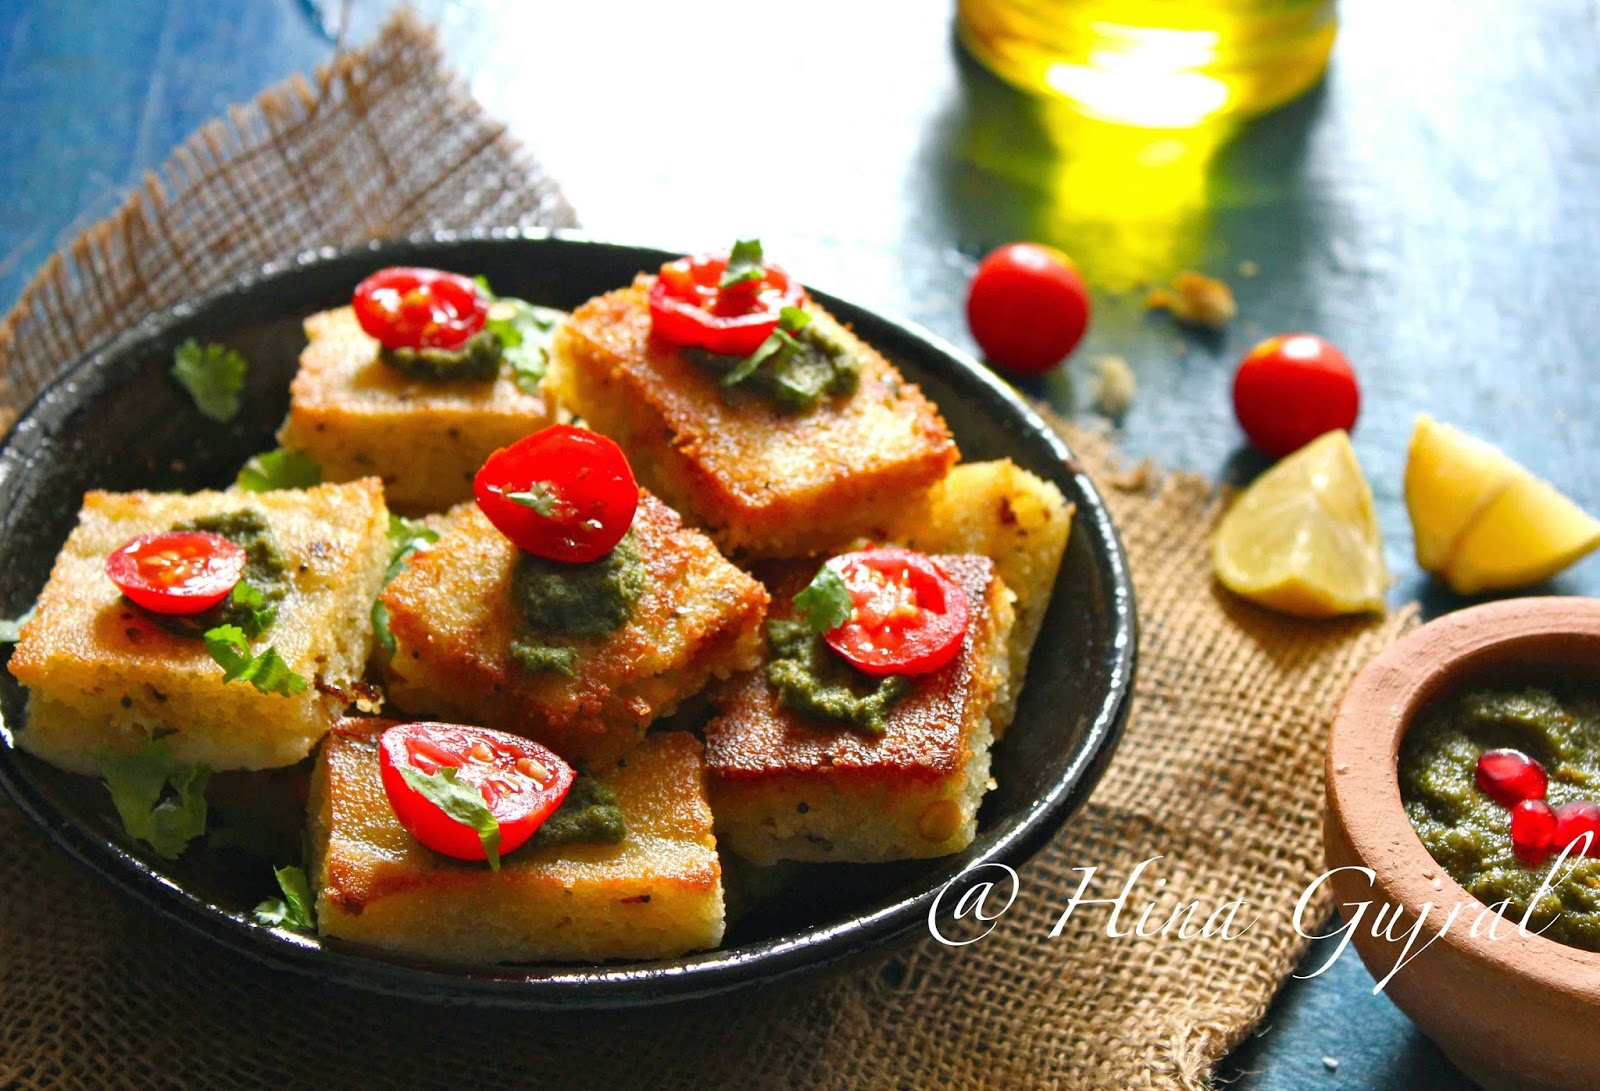 Rava Idli Squares Recipe is an easy to follow breakfast recipe. Find how to make rava idli squares recipe in few simple steps